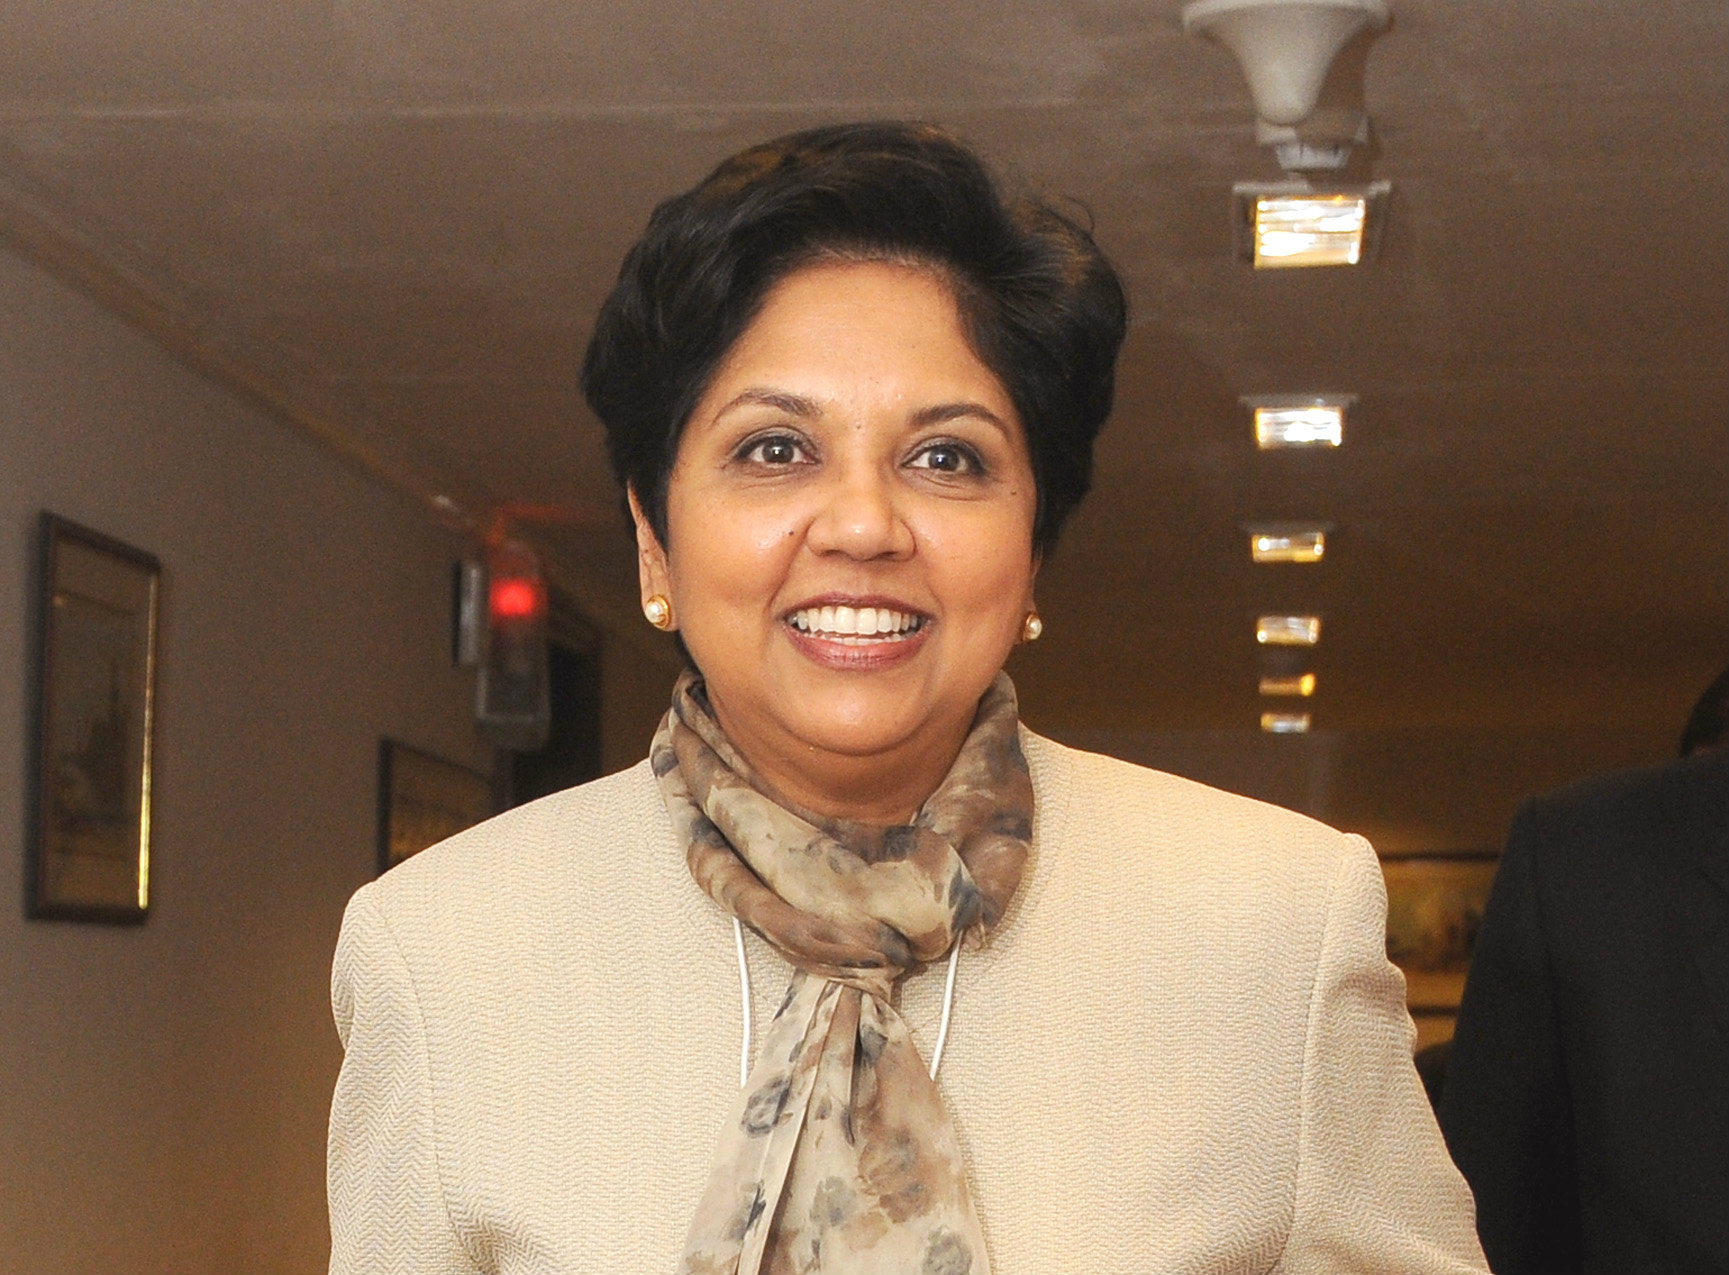 Indra Nooyi stepped down from her role at PepsiCo last August after leading the company for 12 years.